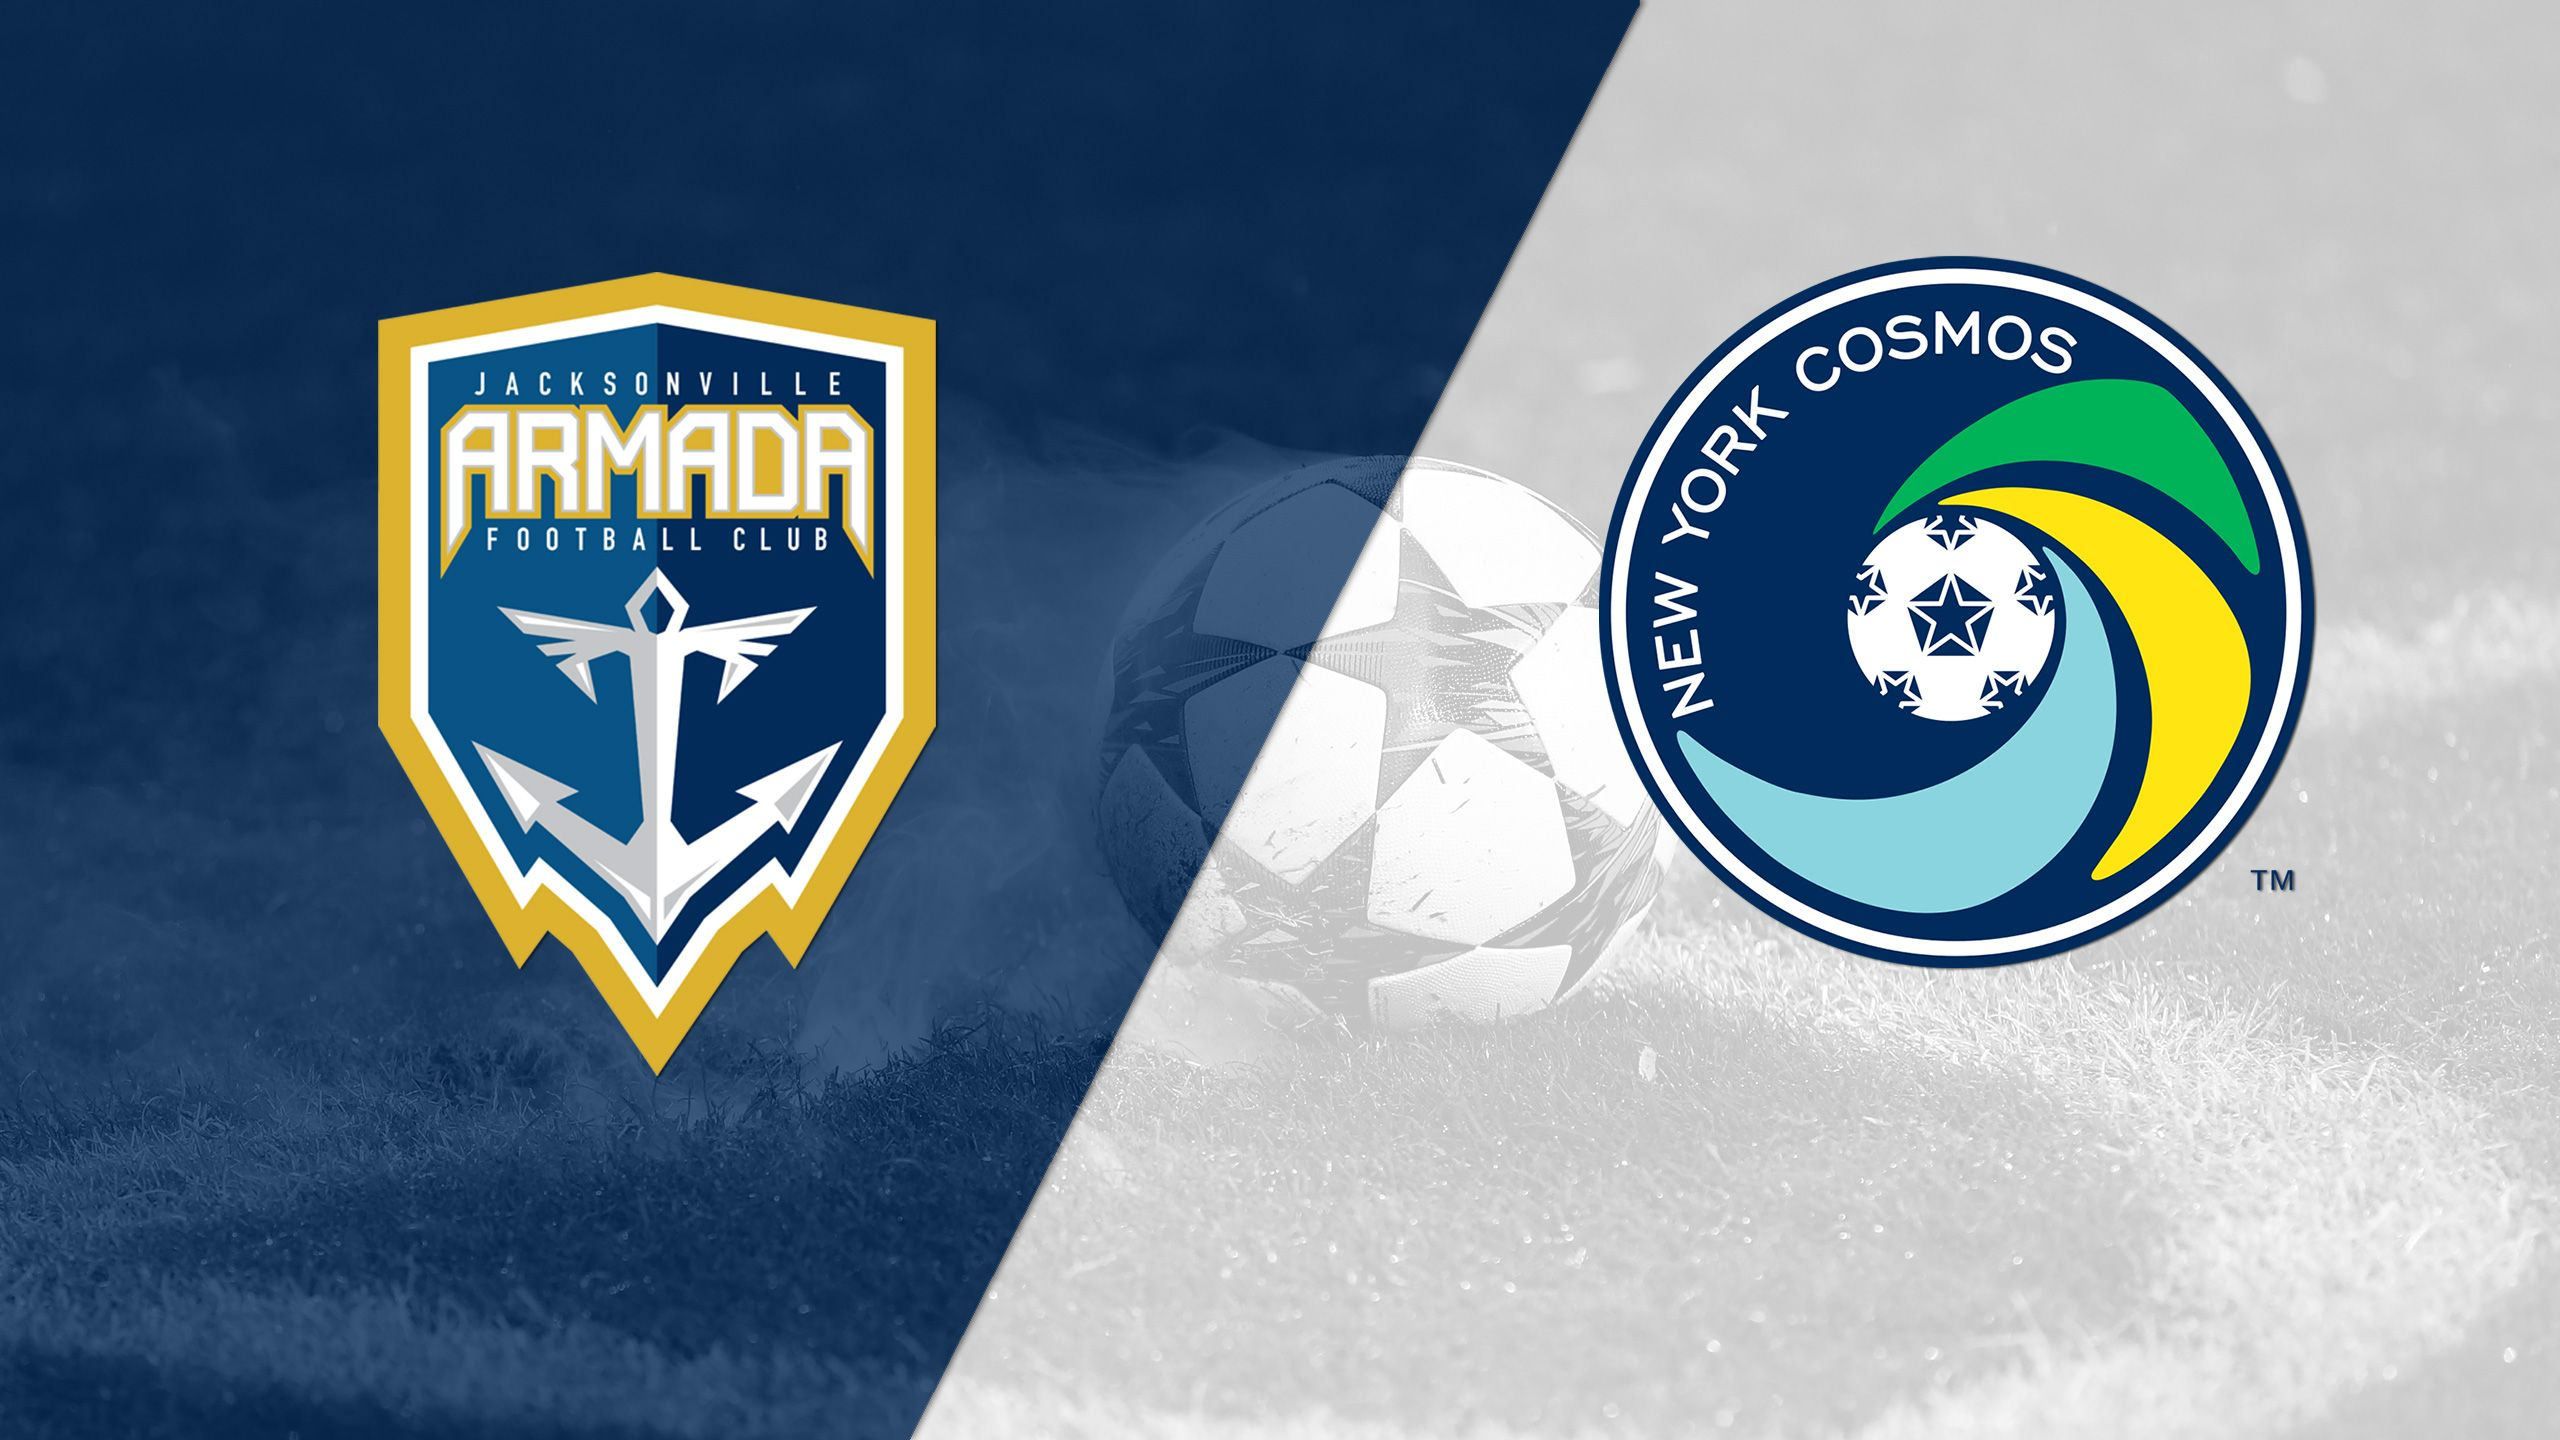 Jacksonville Armada vs. New York Cosmos